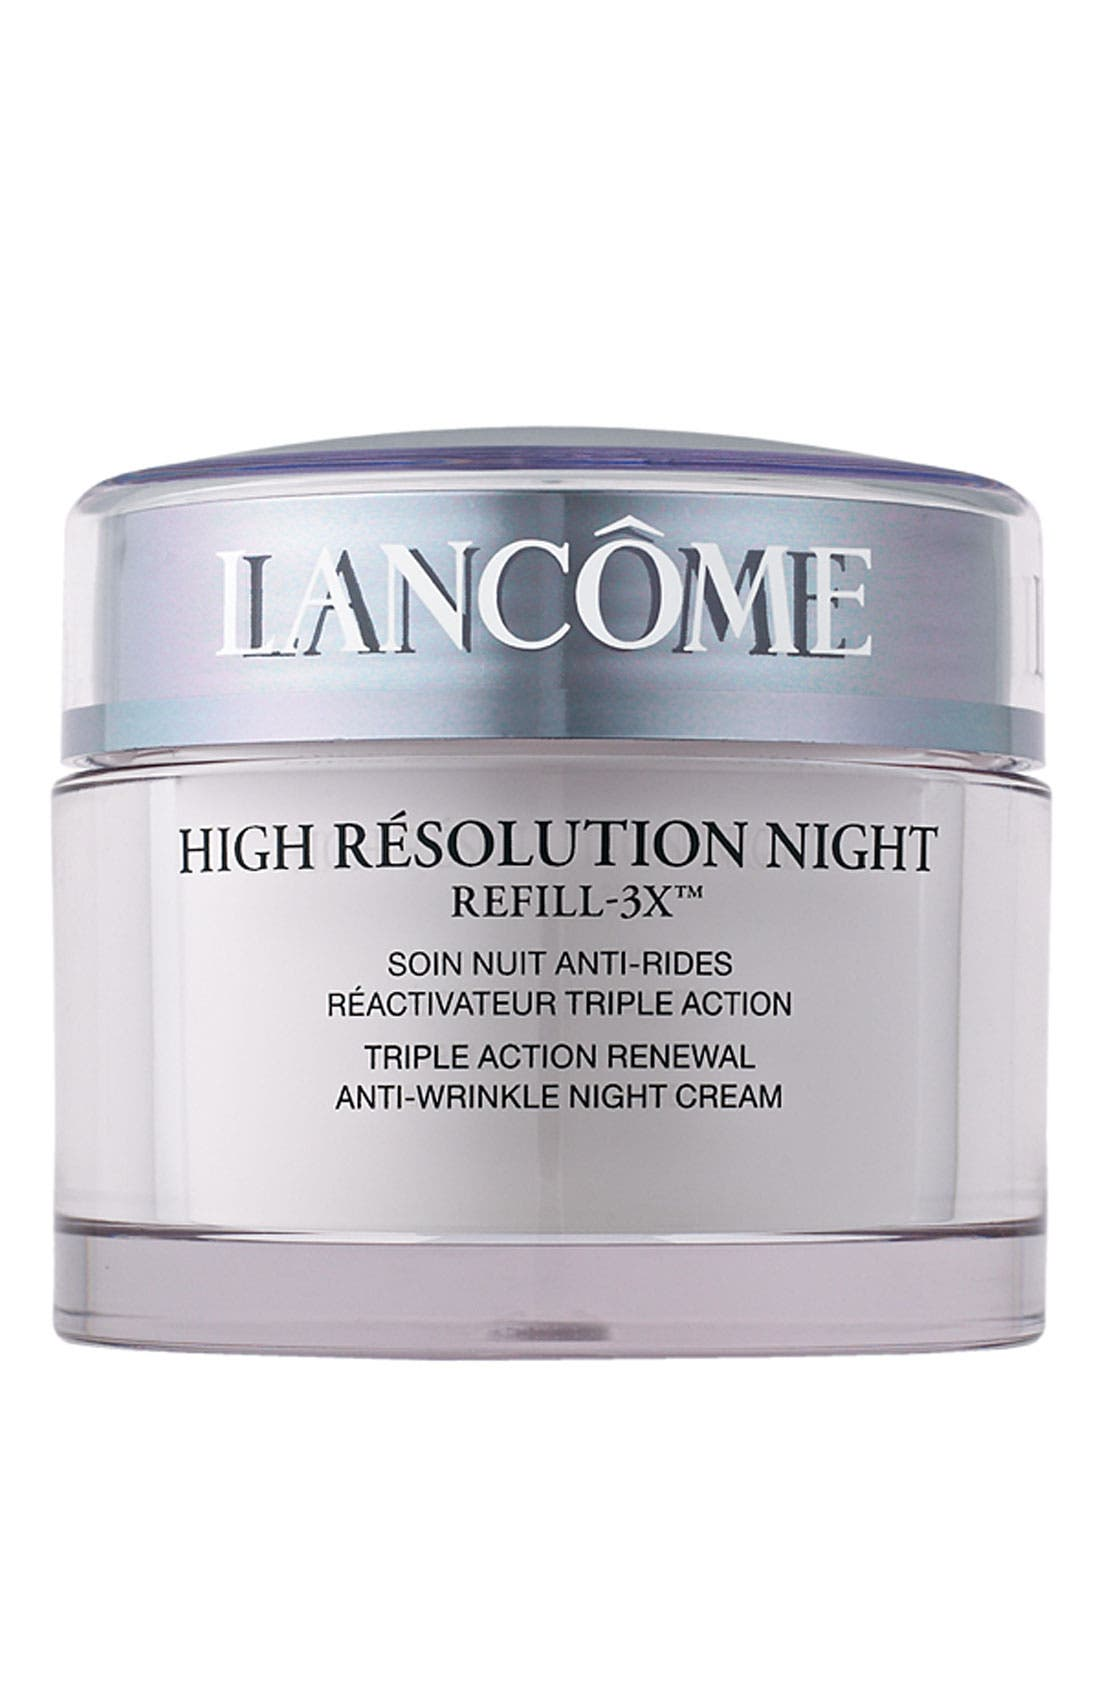 High Résolution Refill-3X Anti-Wrinkle Night Moisturizer Cream,                         Main,                         color, NO COLOR